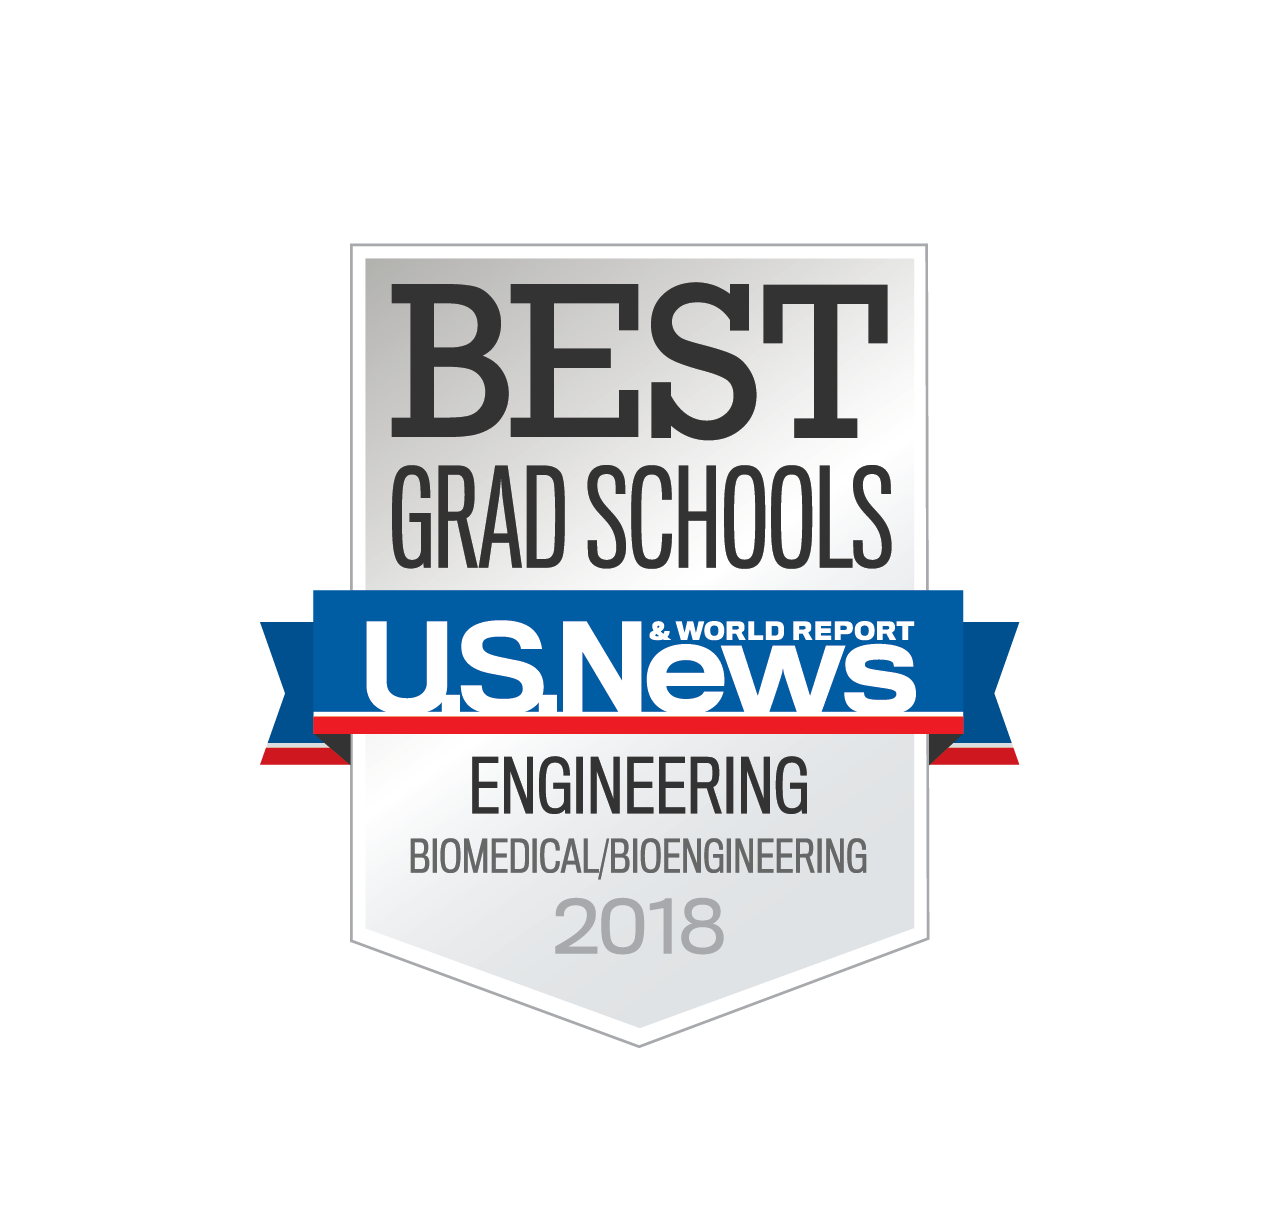 US News badge - Best Grad Schools - Biomedical Engineering 2018